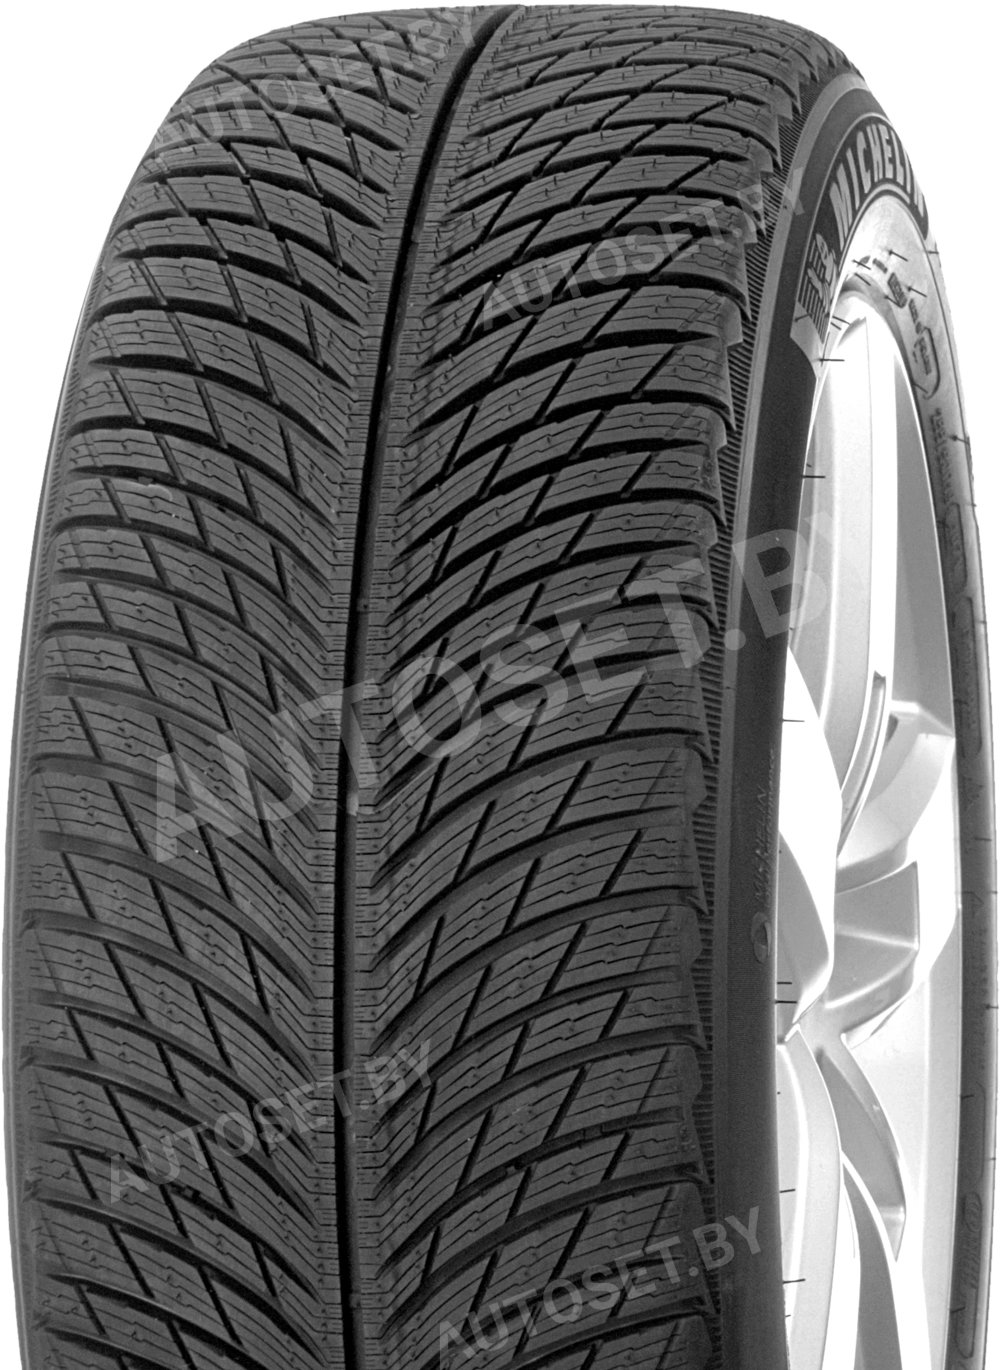 Зимняя шина MICHELIN Pilot Alpin 5 SUV – вид 2